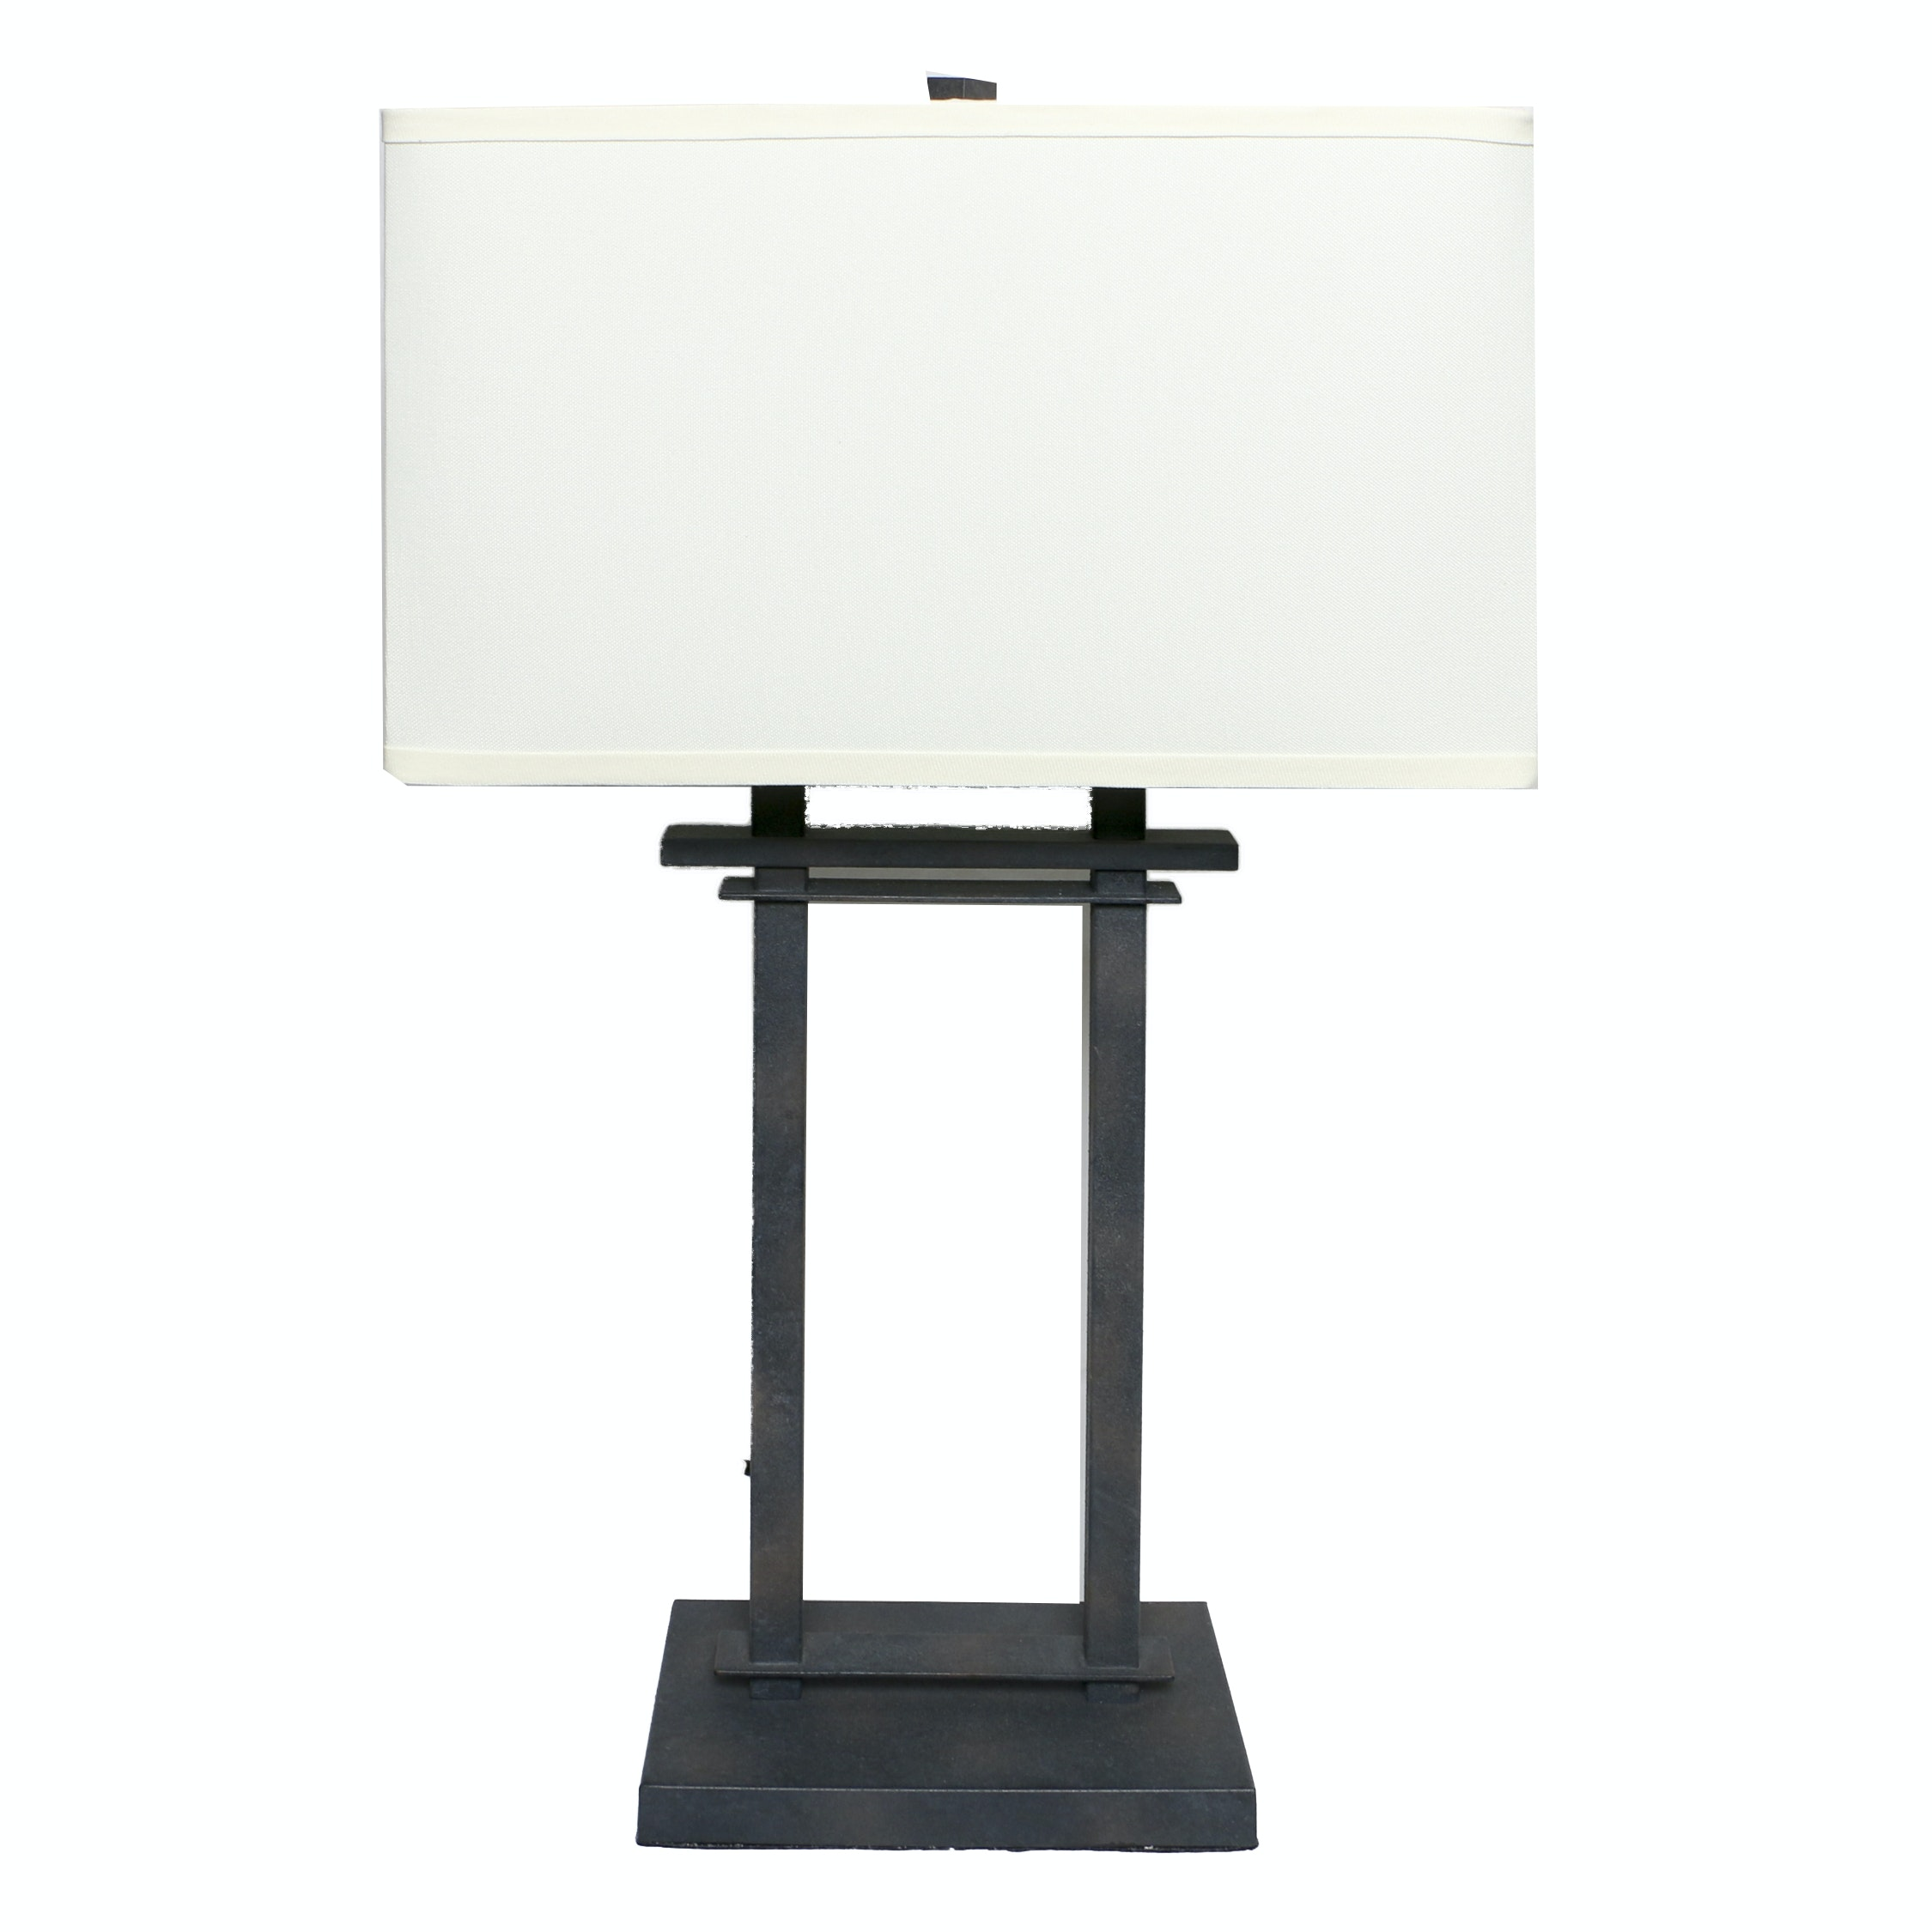 Black Metal Structural Table Lamp with Rectangular Shade